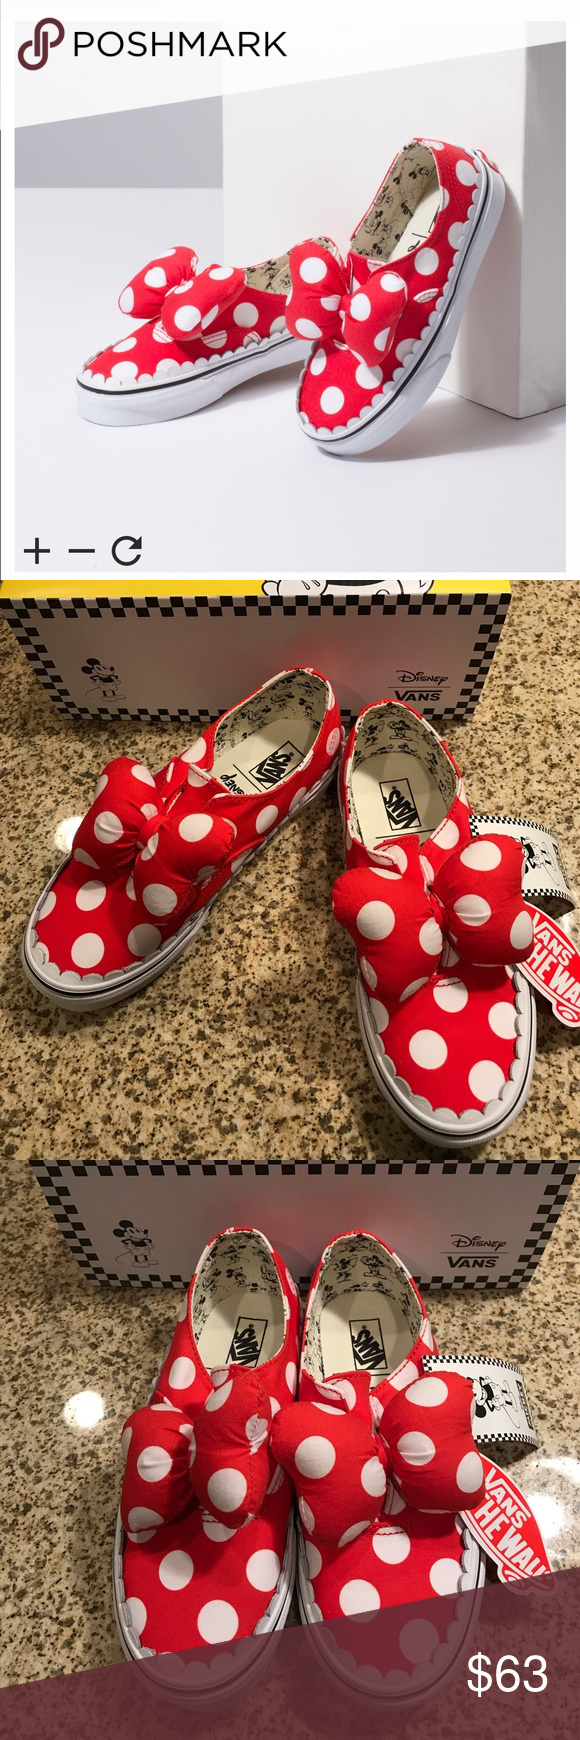 2d0a5c471a Disney vans size 2 girls Minnie Mouse sold out new Disney vans sneakers new  in box